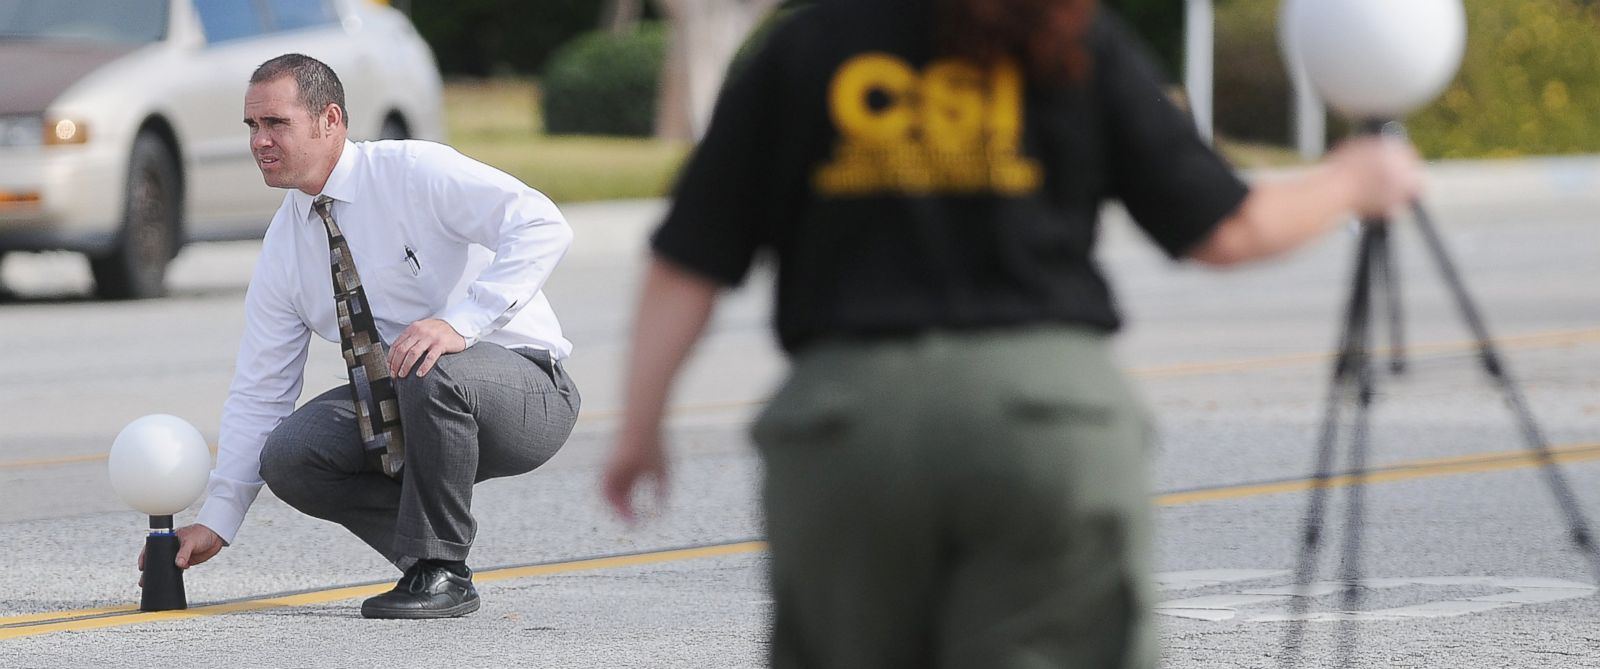 PHOTO: San Bernardino County Sheriffs officials conduct the investigation on Dec. 3, 2015, at the scene of the shoot out between law enforcement officers and suspects in a mass shooting on Orange Show Drive in San Bernardino, Calif.